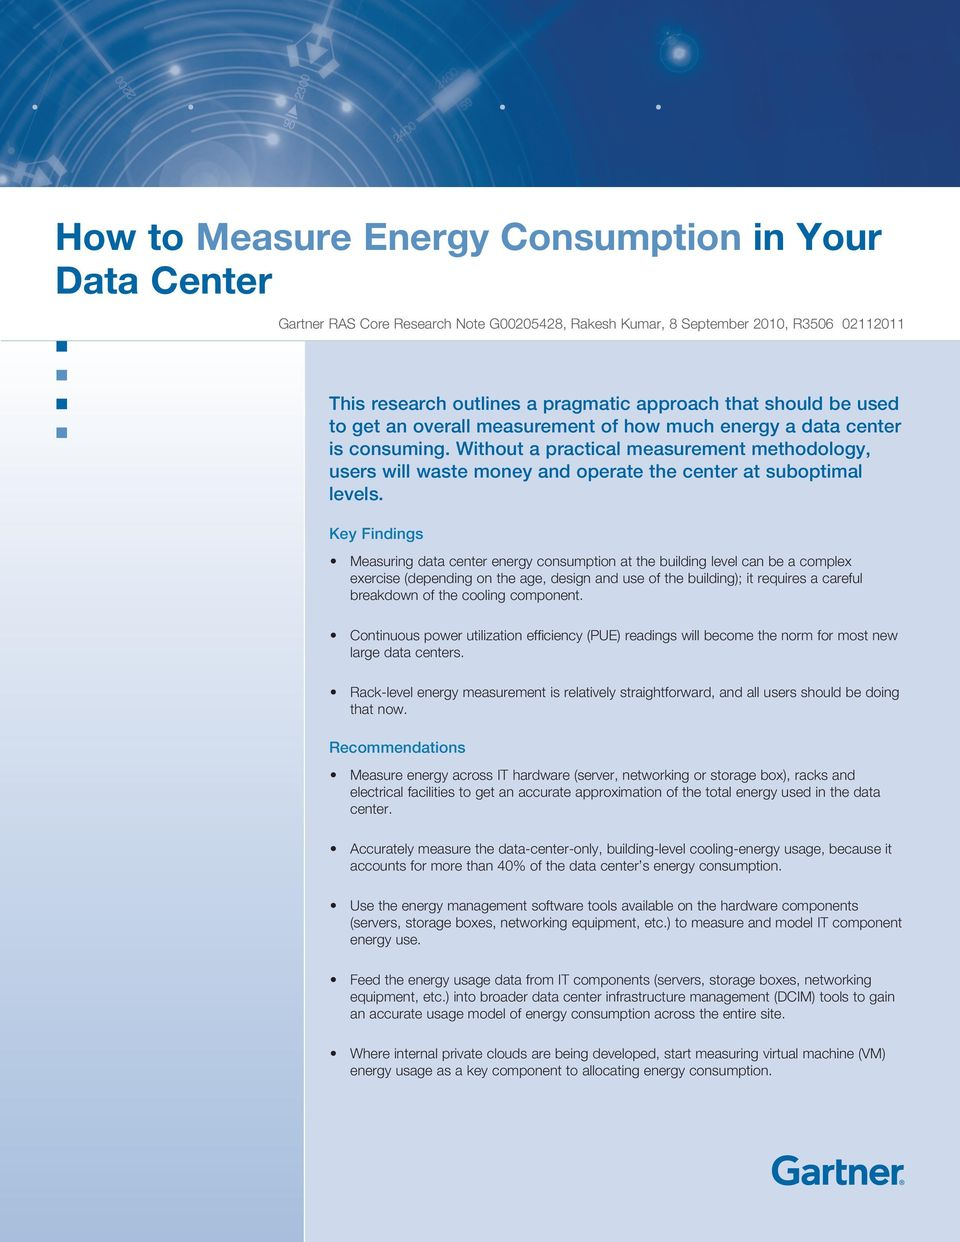 Key Findings Measuring data center energy consumption at the building level can be a complex exercise (depending on the age, design and use of the building); it requires a careful breakdown of the